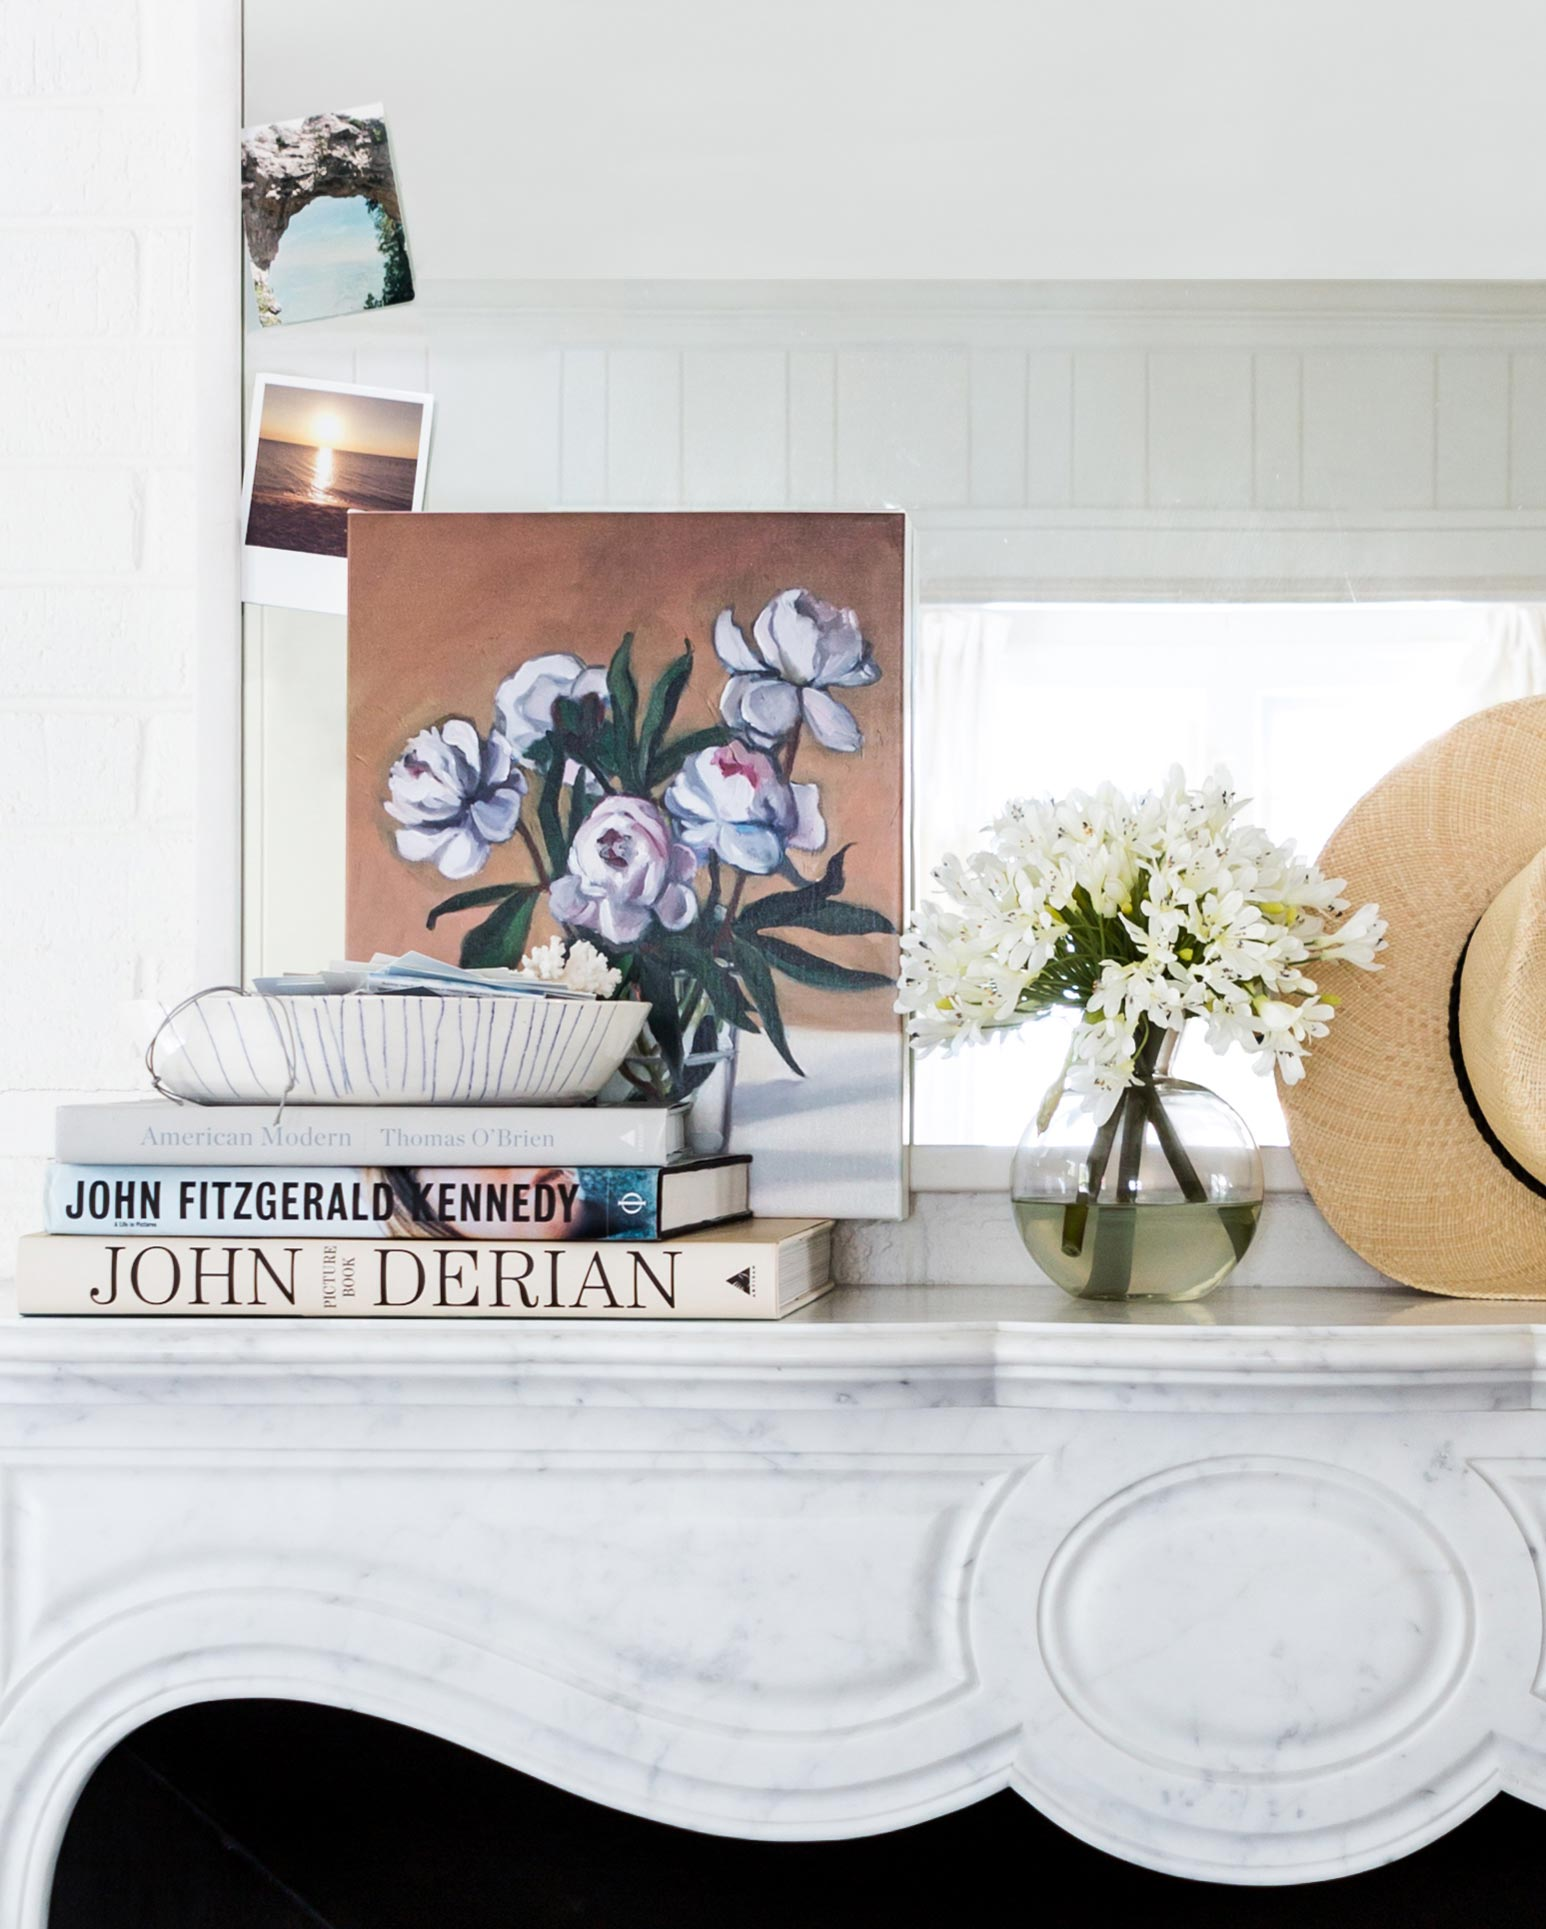 Peonies  by  Marie Freudenberger . Photo by  Marta X. Perez  for Artfully Walls.